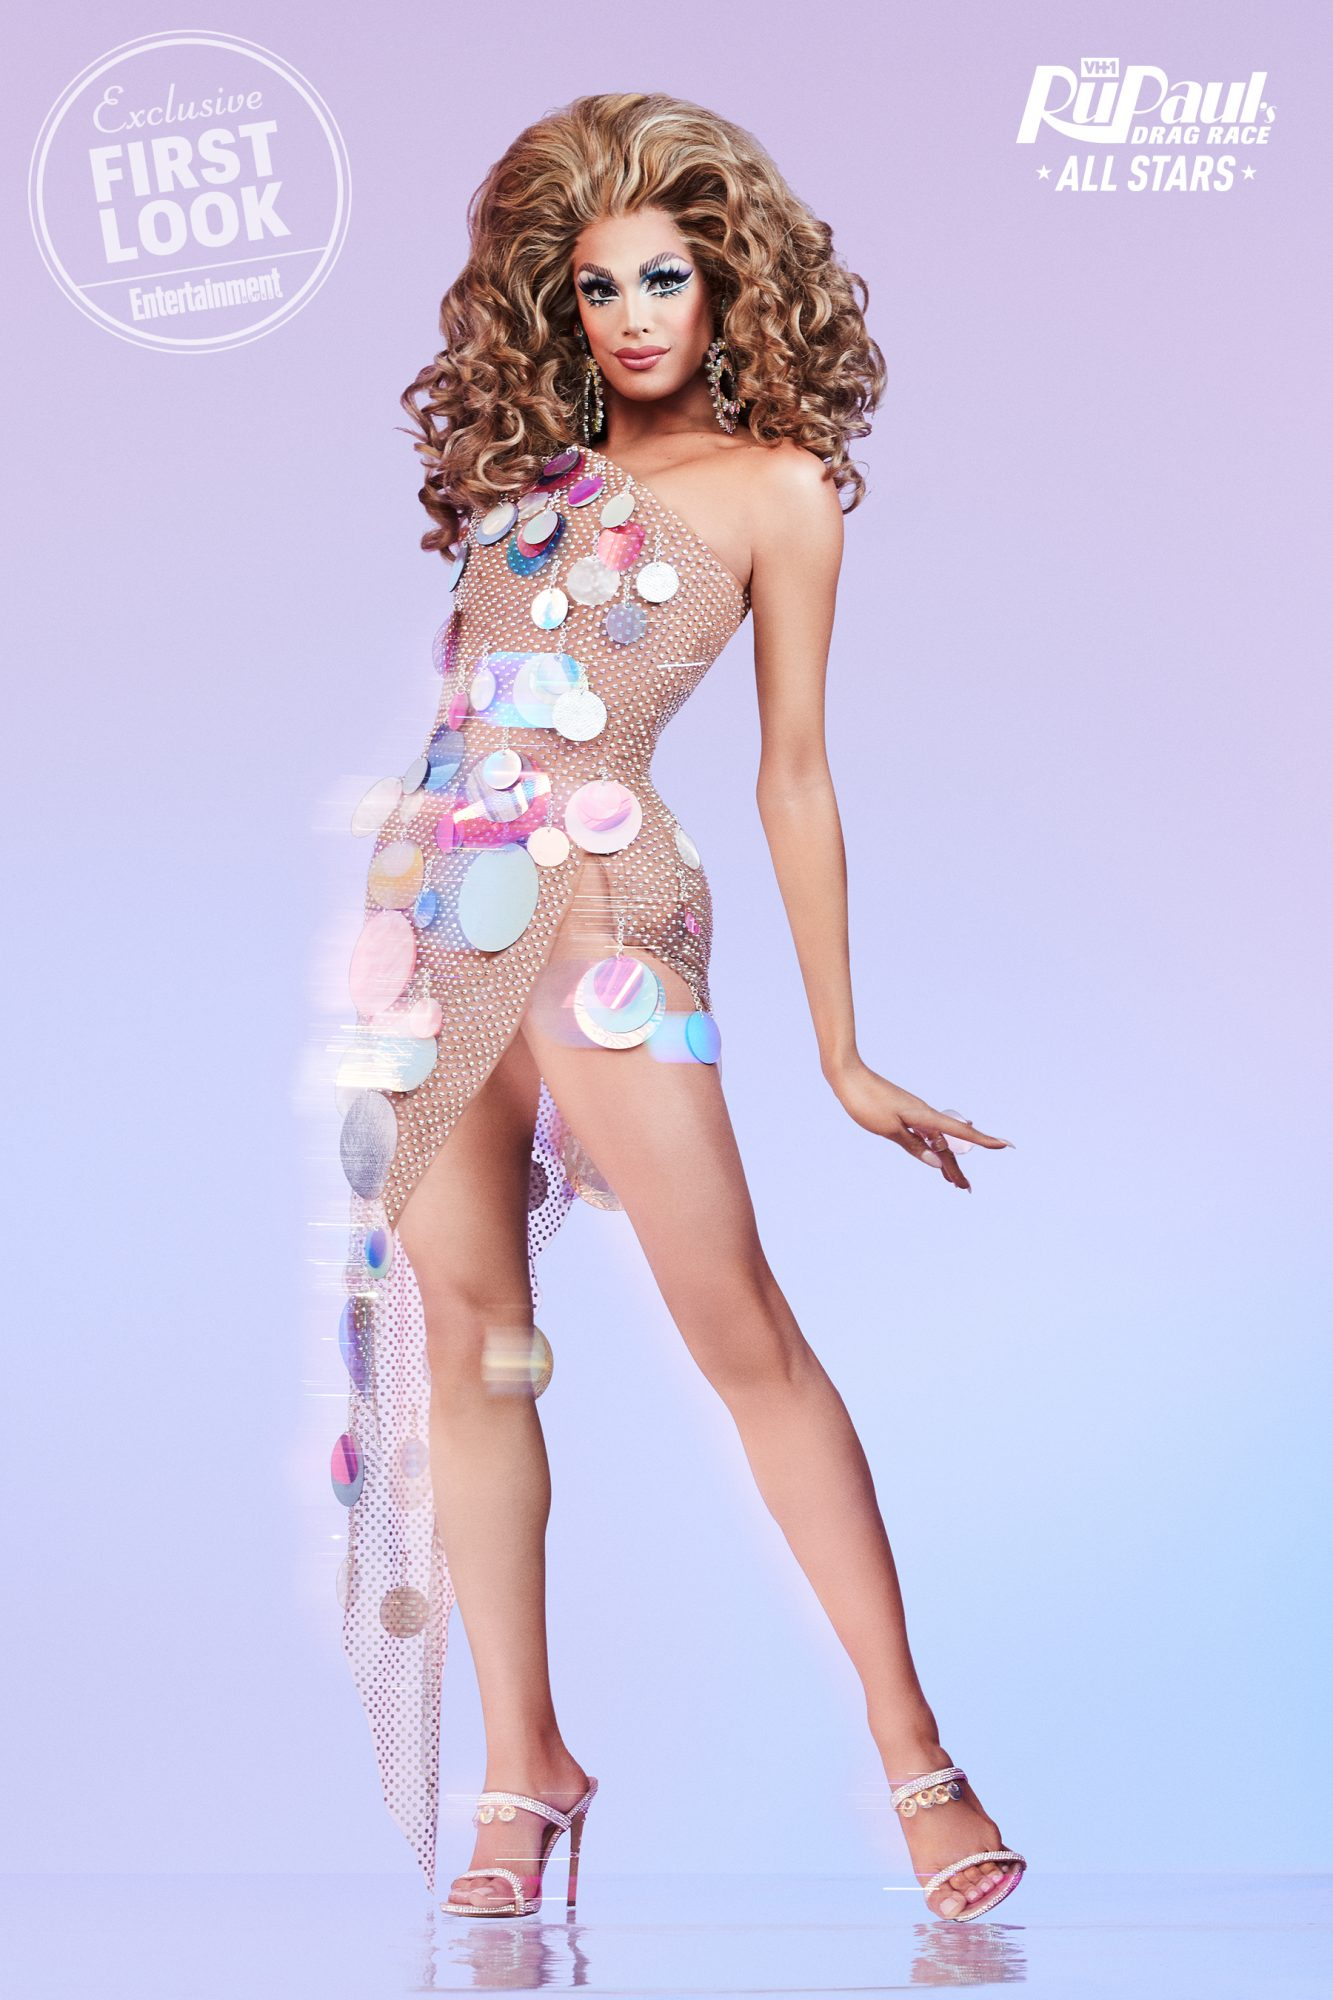 VH1_RPDR_AS4_digital_1800x2700_individual_00